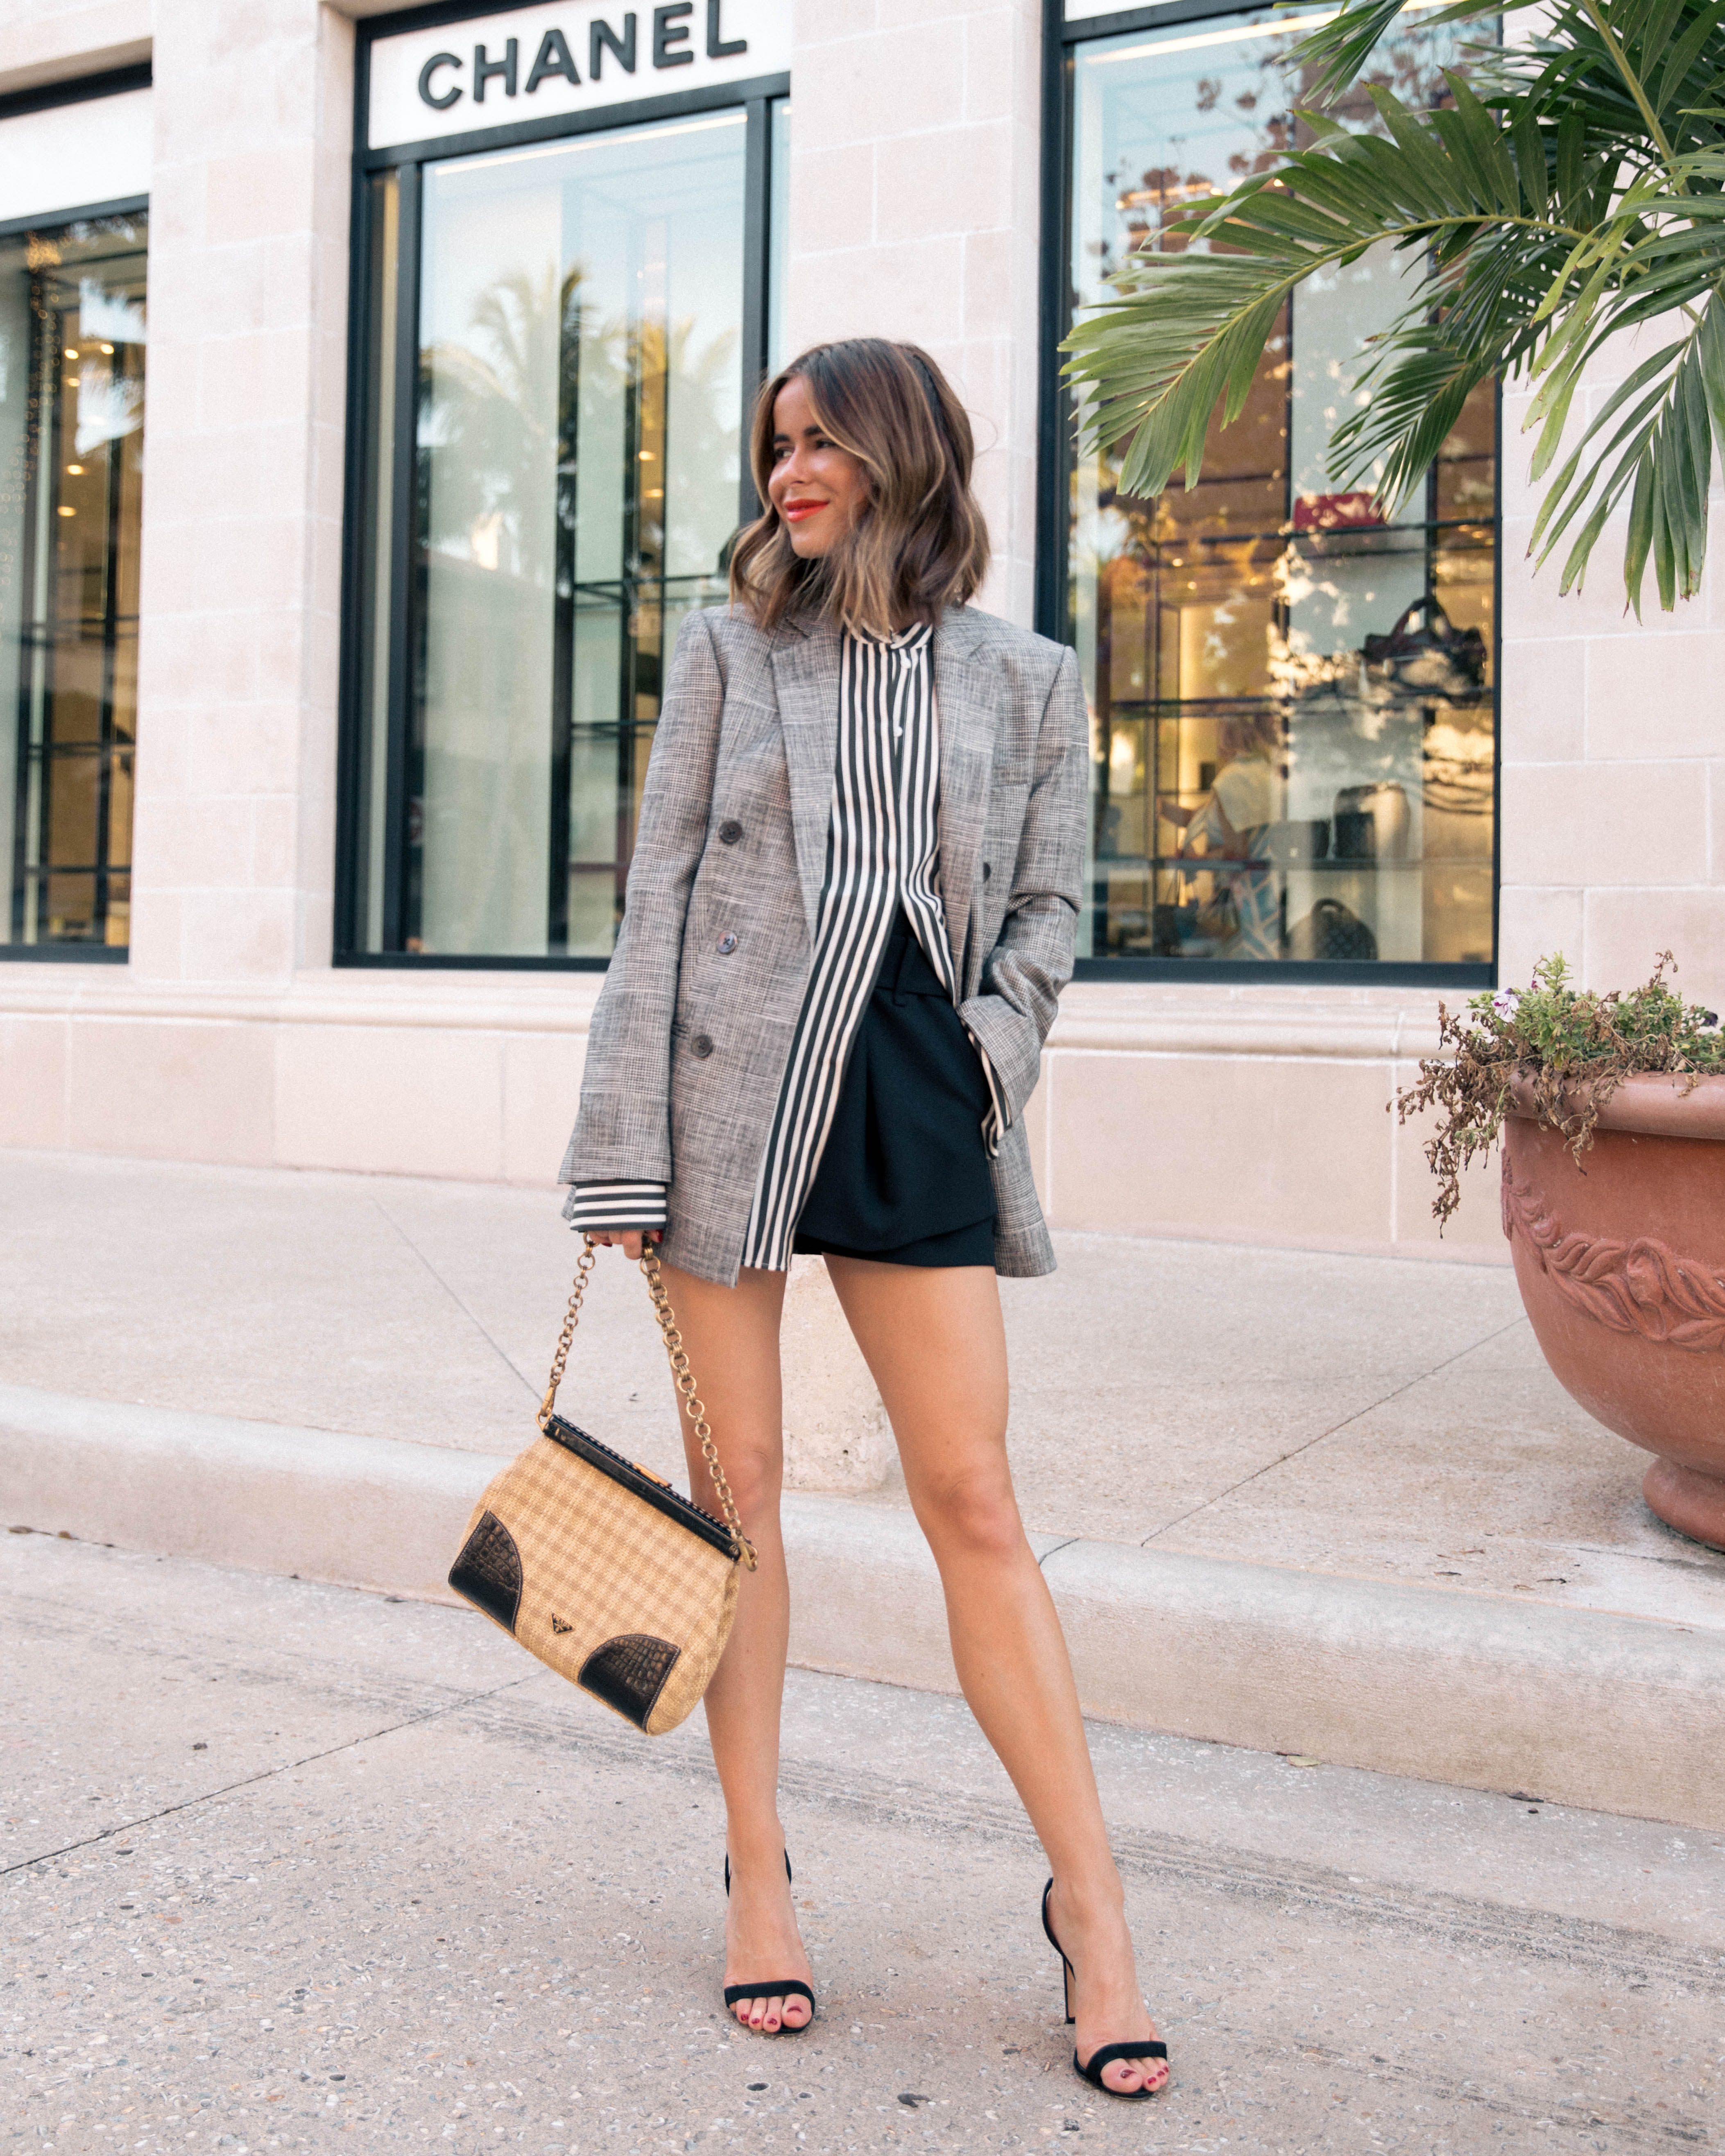 Stephanie Hill from The Style Bungalow wears ootd featuring Rebecca Taylor